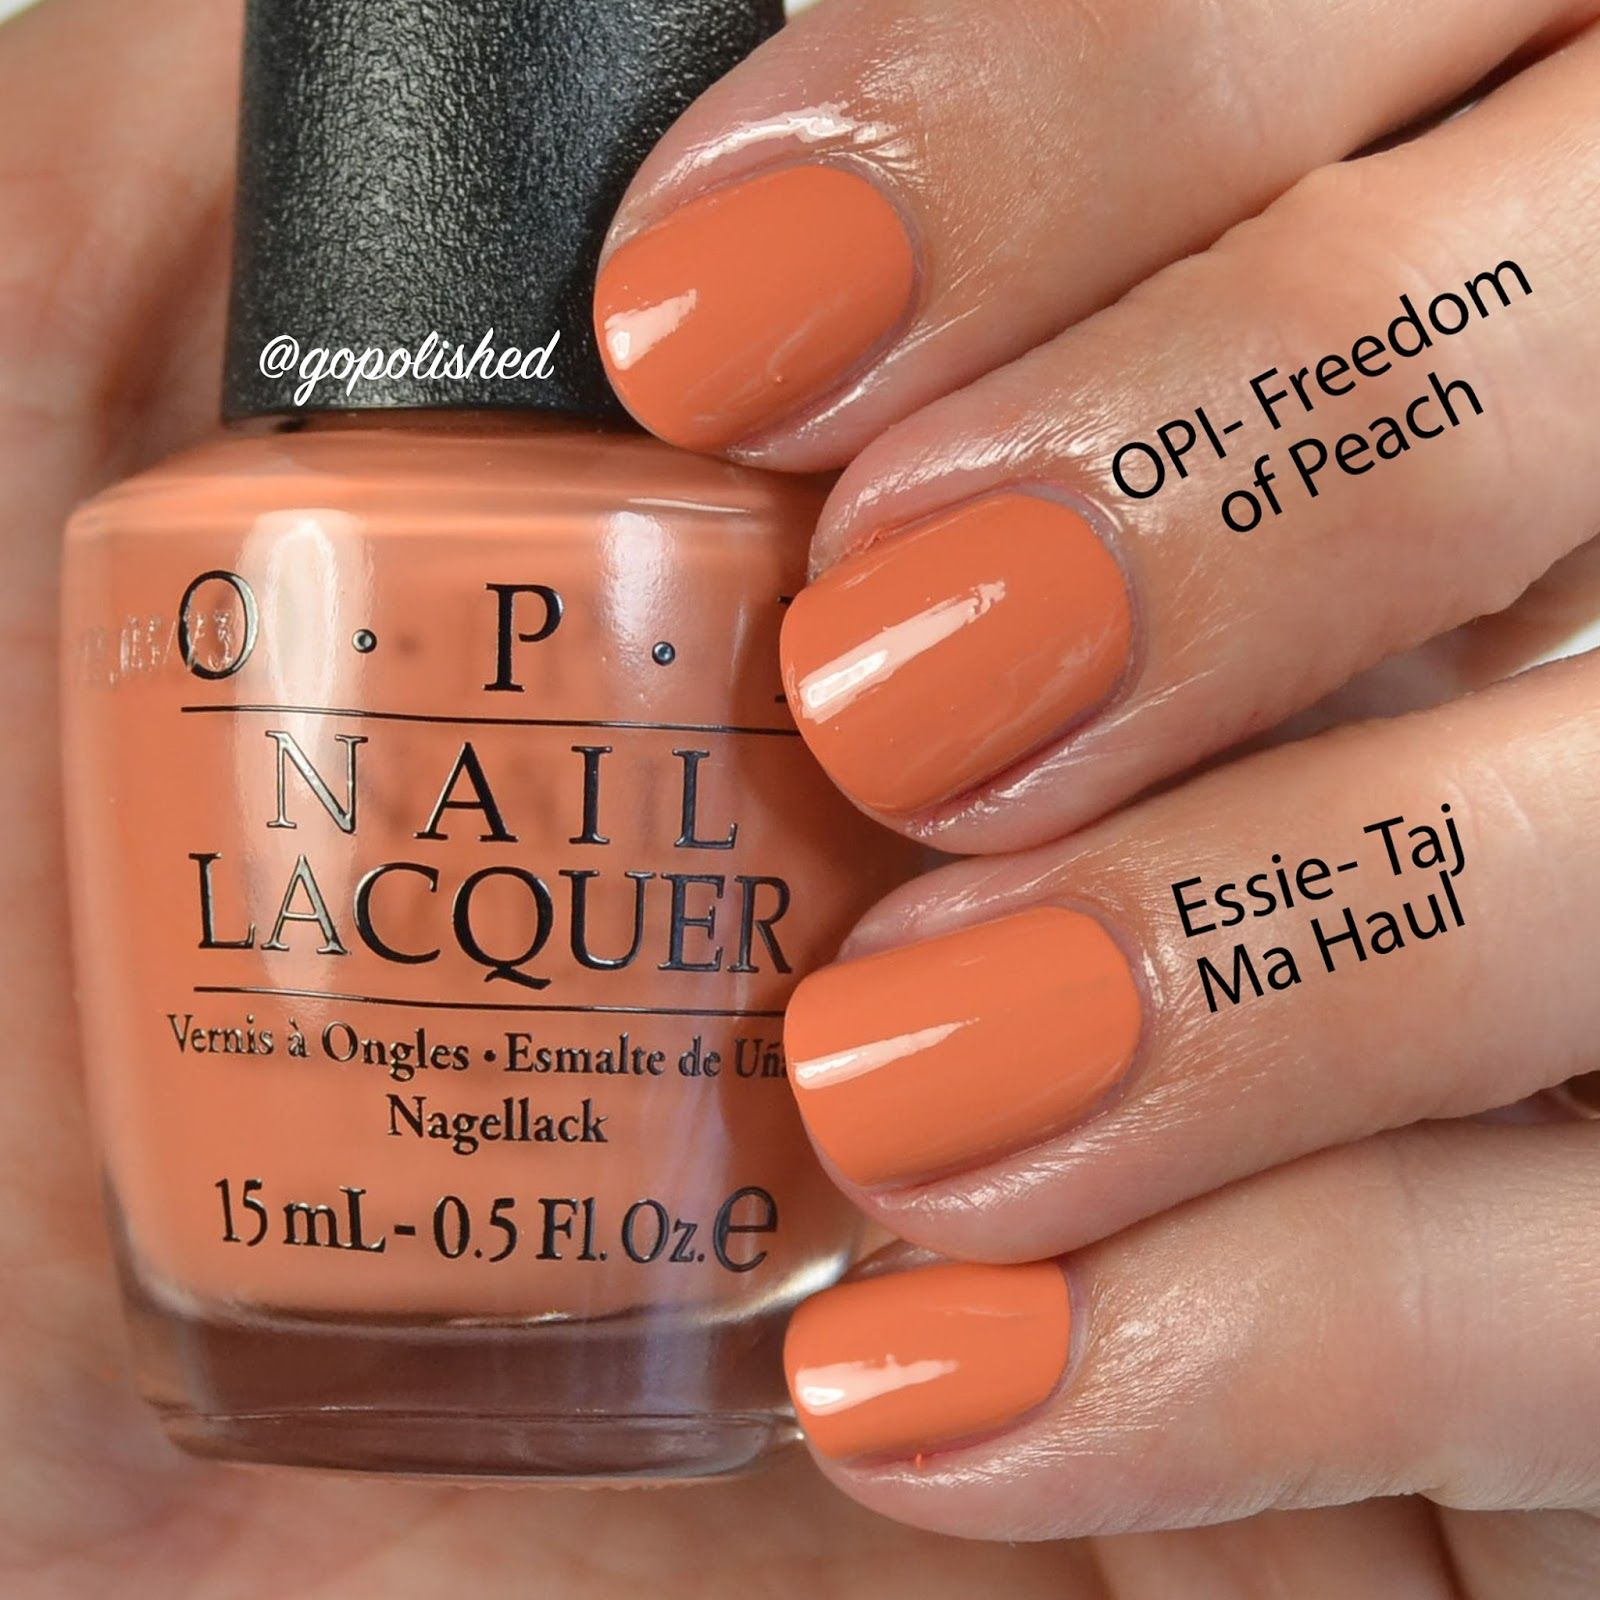 Image Result For Opi Freedom Of Peach Swatch Peach Nails Peach Nail Polish Nail Polish